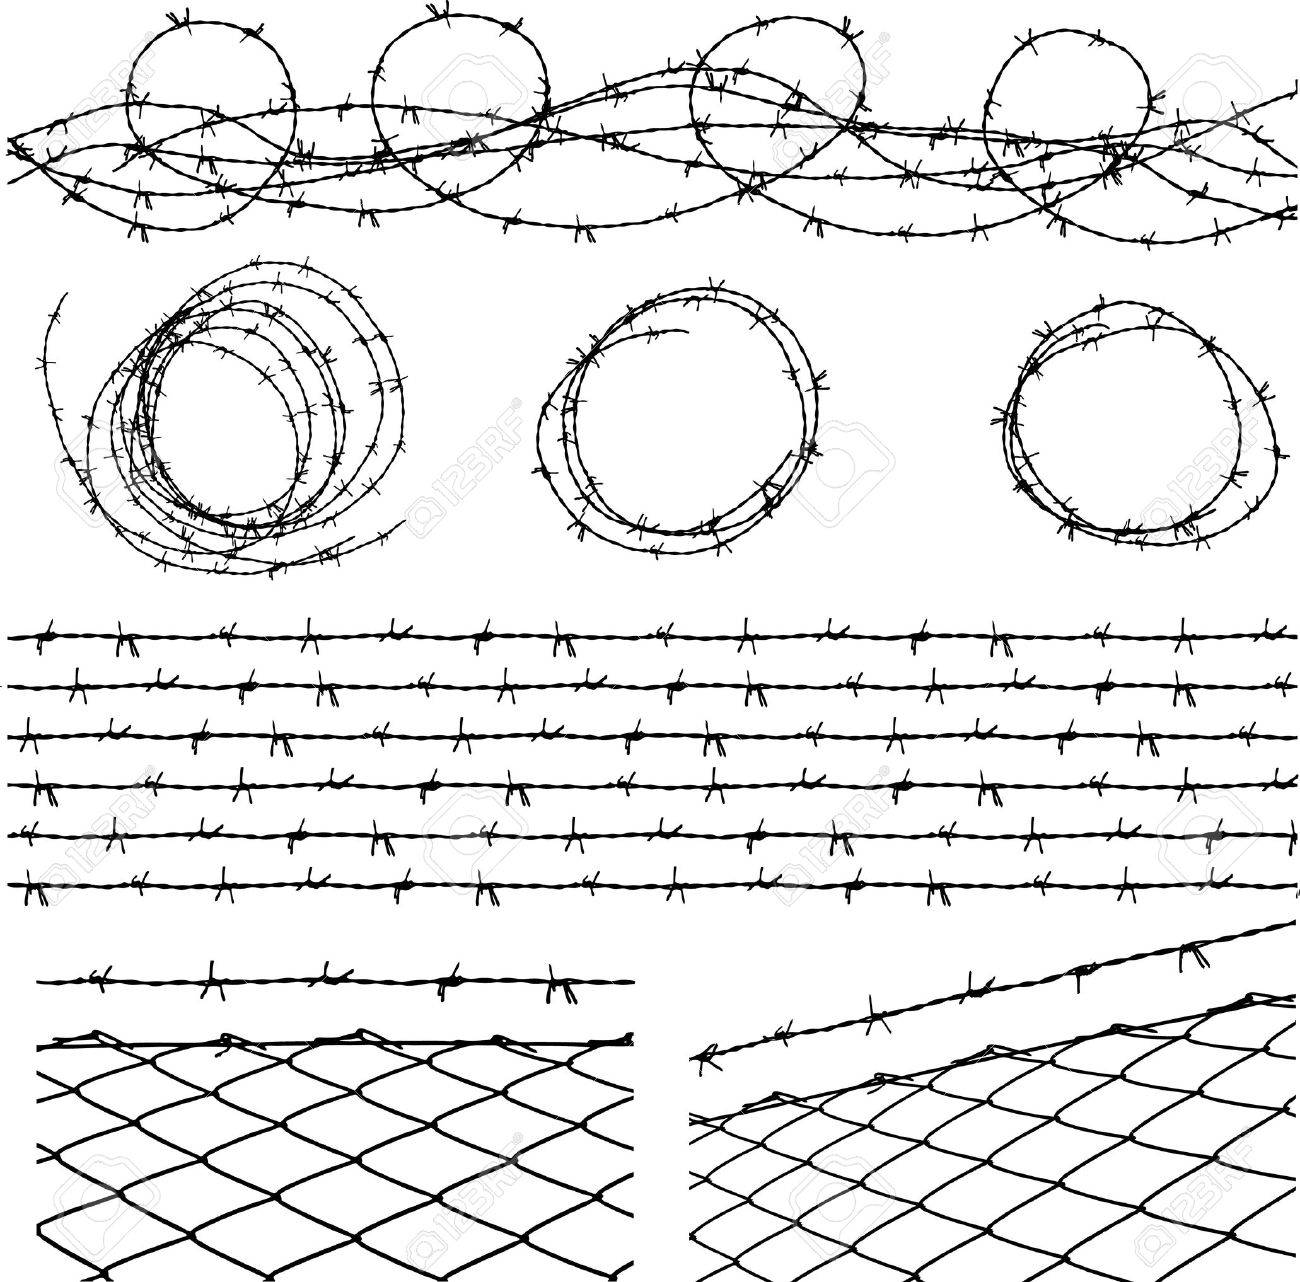 Some barbed wire elements with a barbed wire seamless module - 3513068